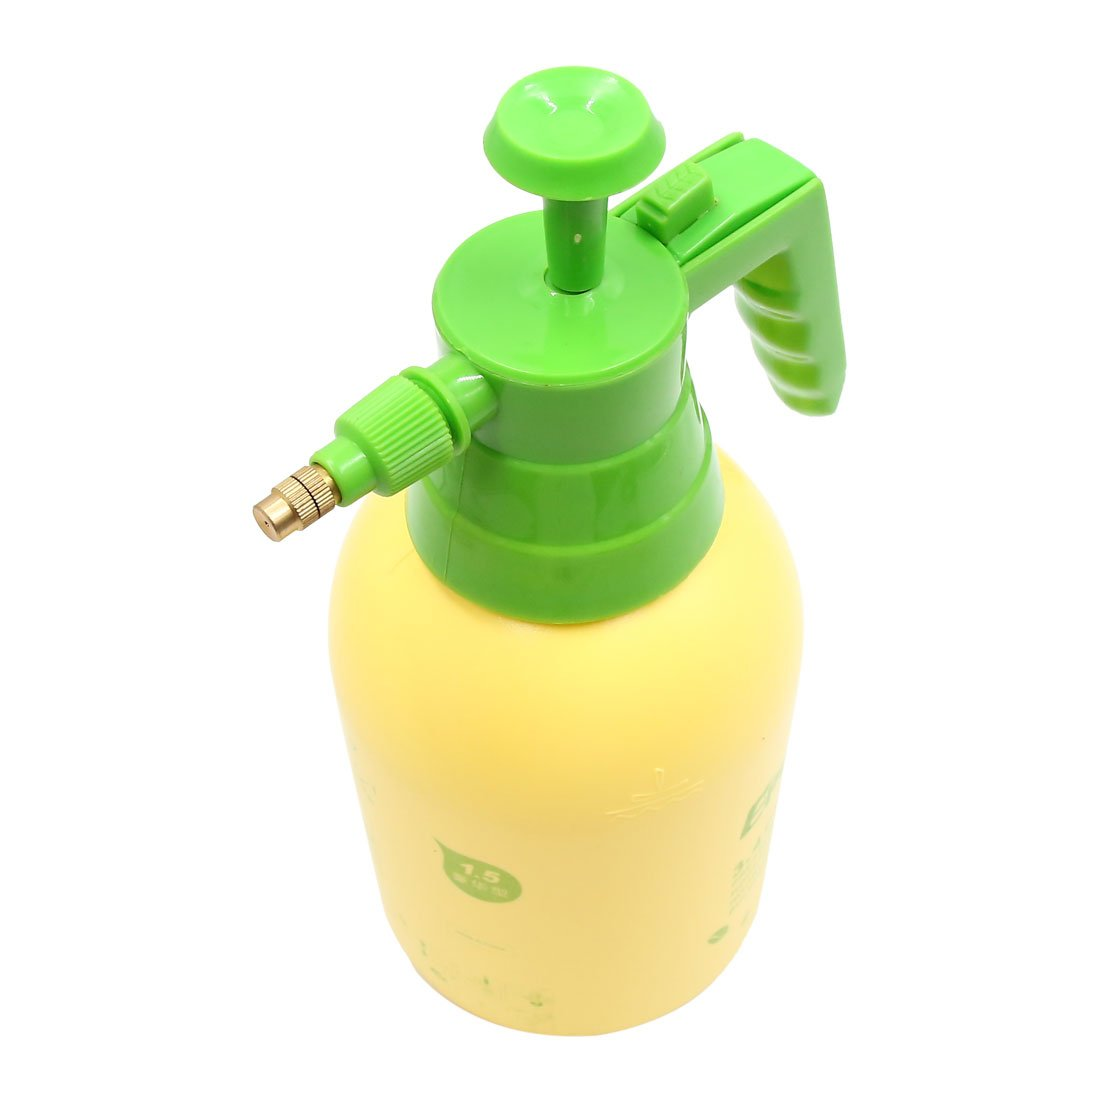 uxcell Plastic Yellow Car Trigger Spray Bottle Window Washing Cleaner Tool 1.5L by uxcell (Image #4)